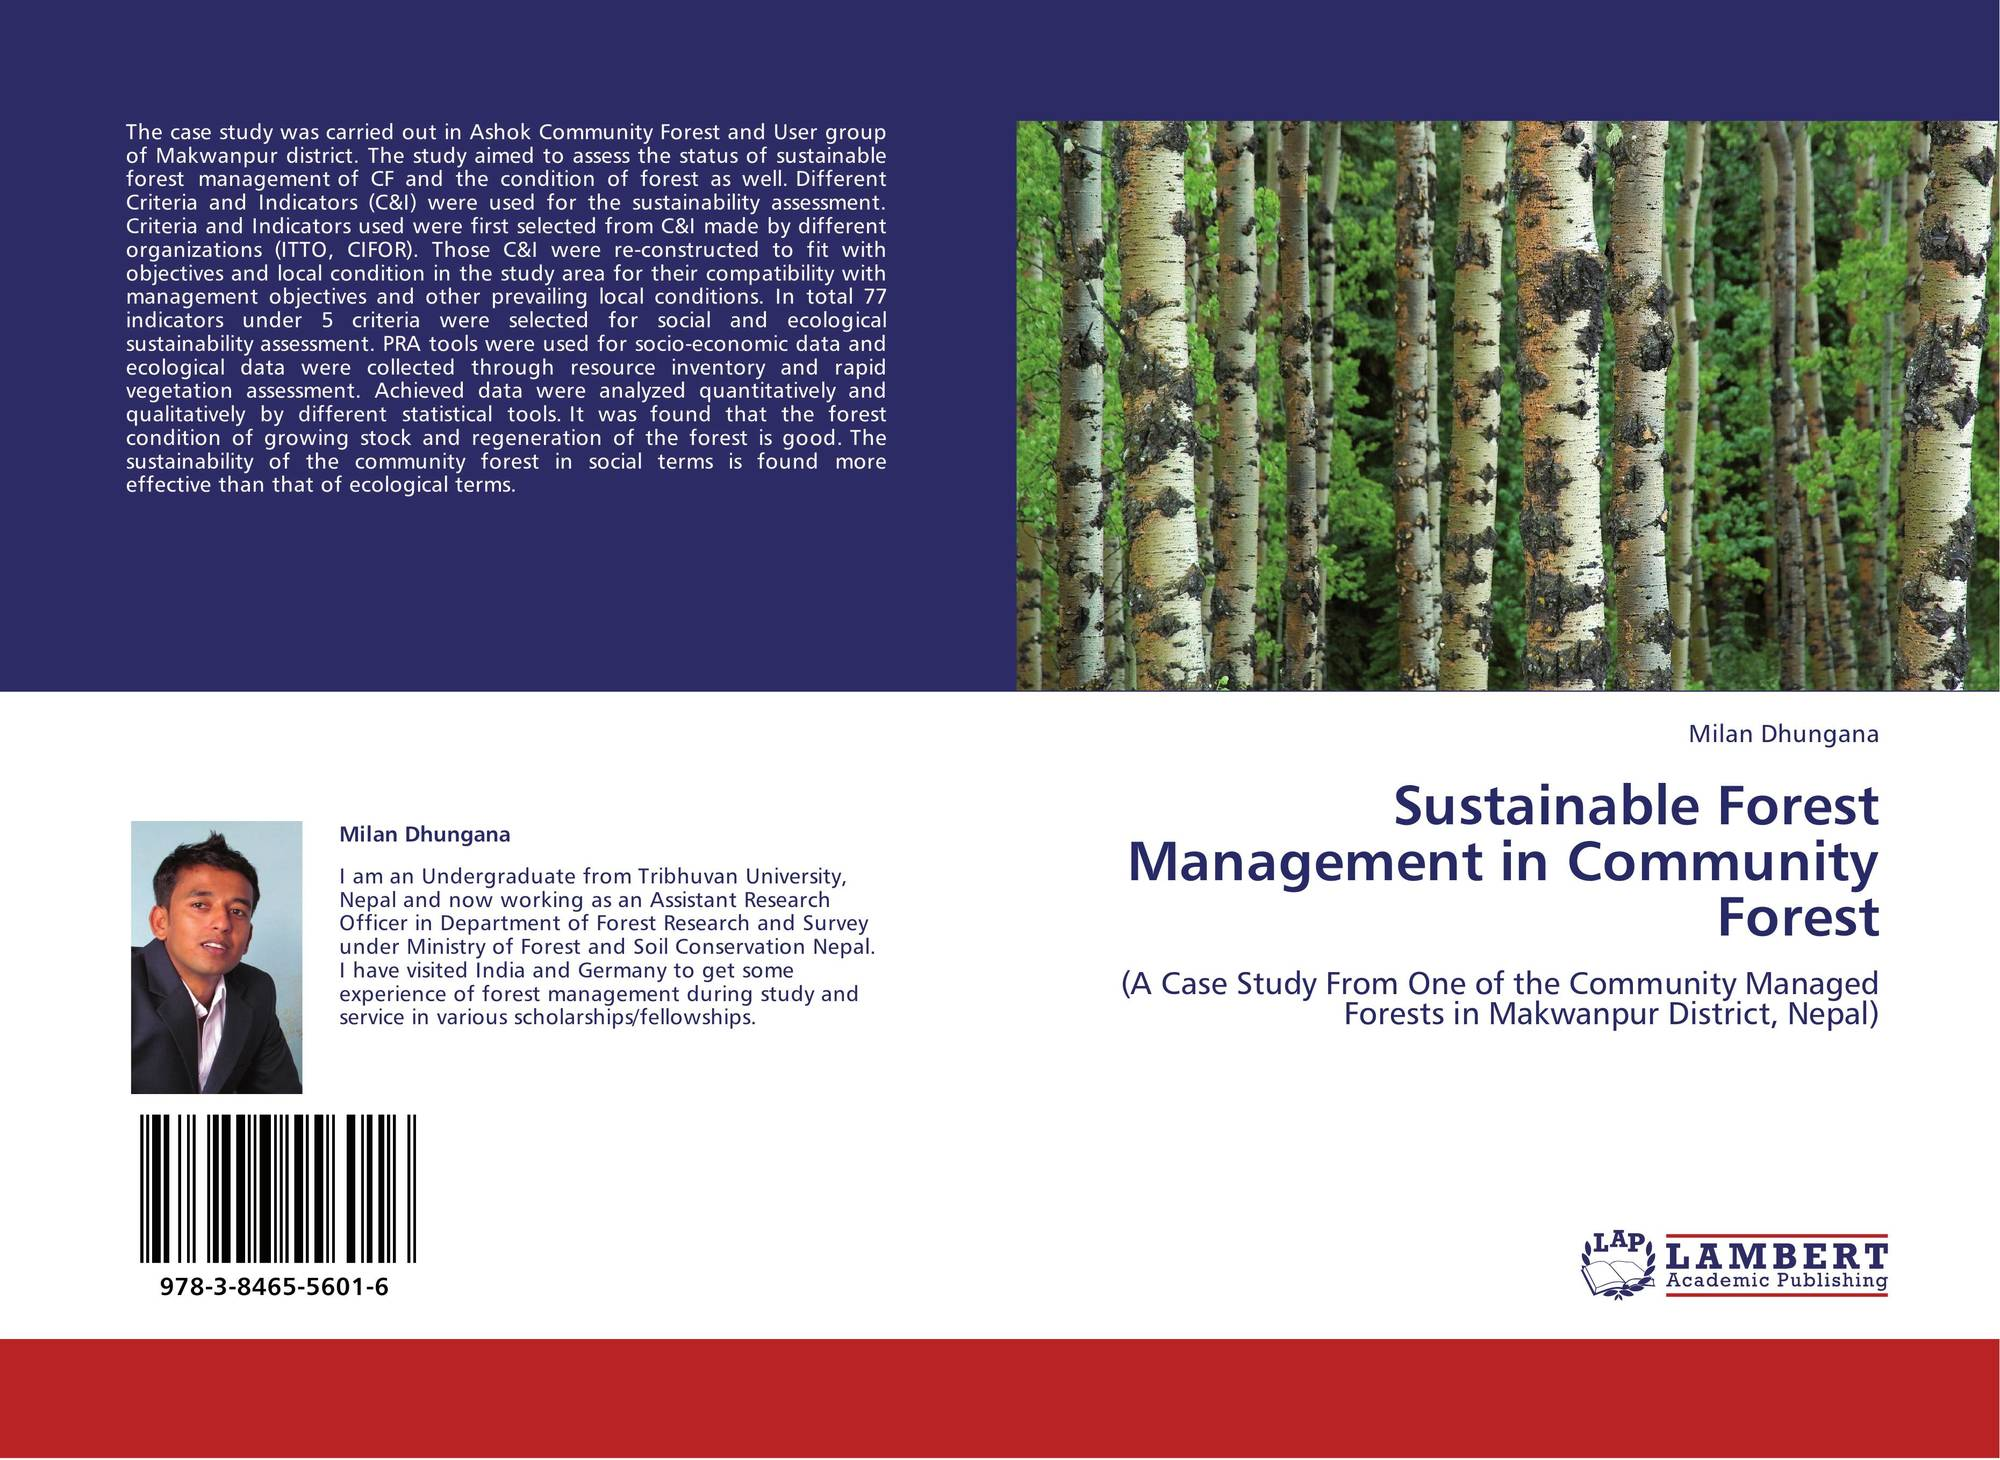 Sustainable forest management in community